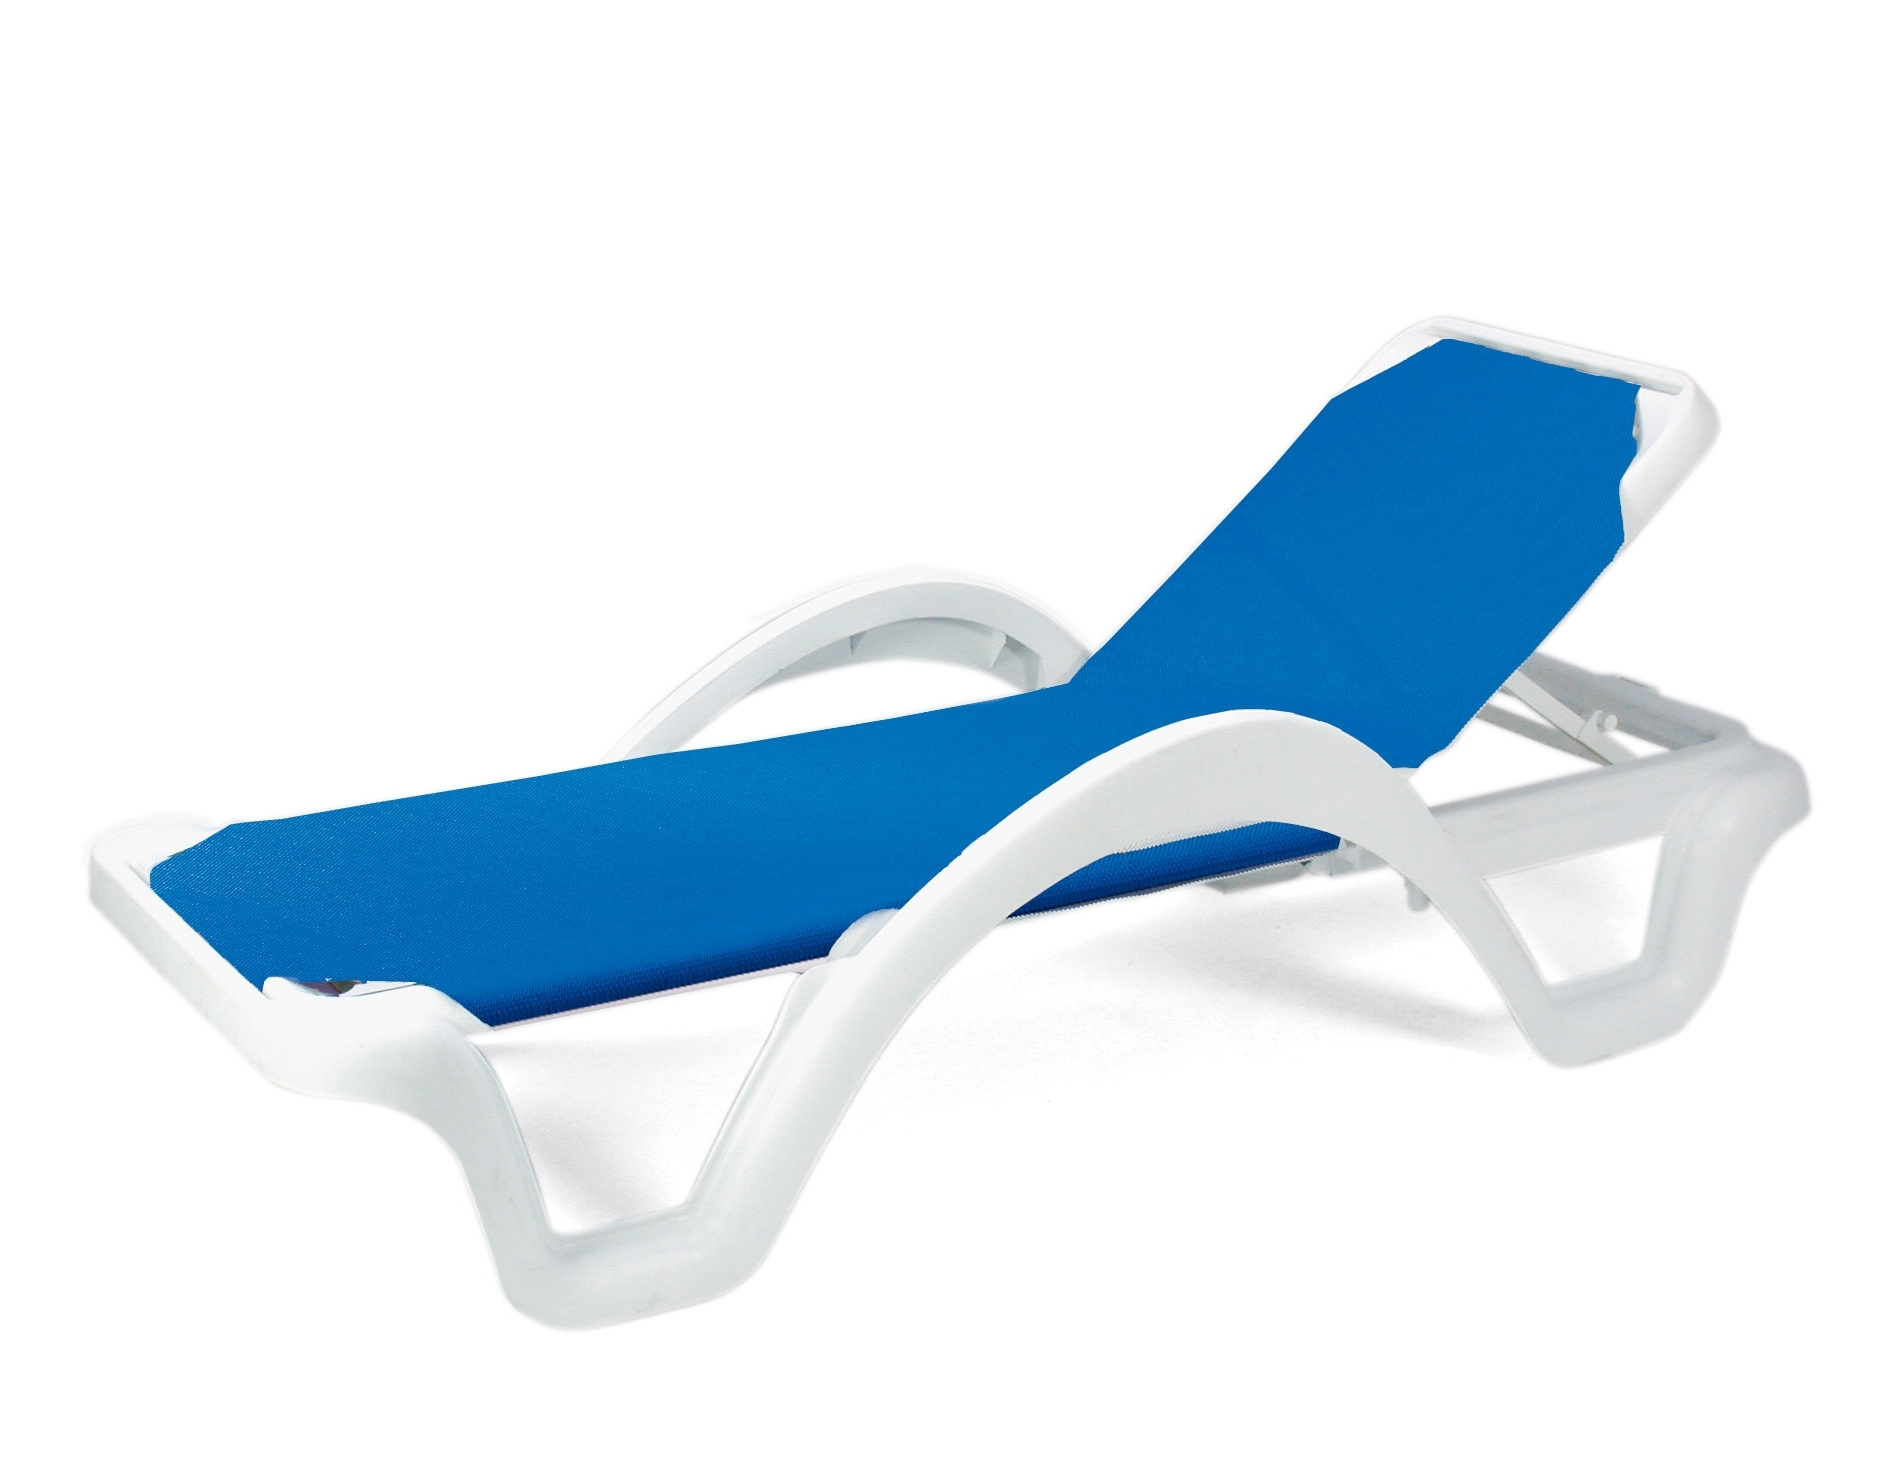 Well Liked Resin Chaise Lounges Intended For Chaise Lounge Chairs (View 12 of 15)